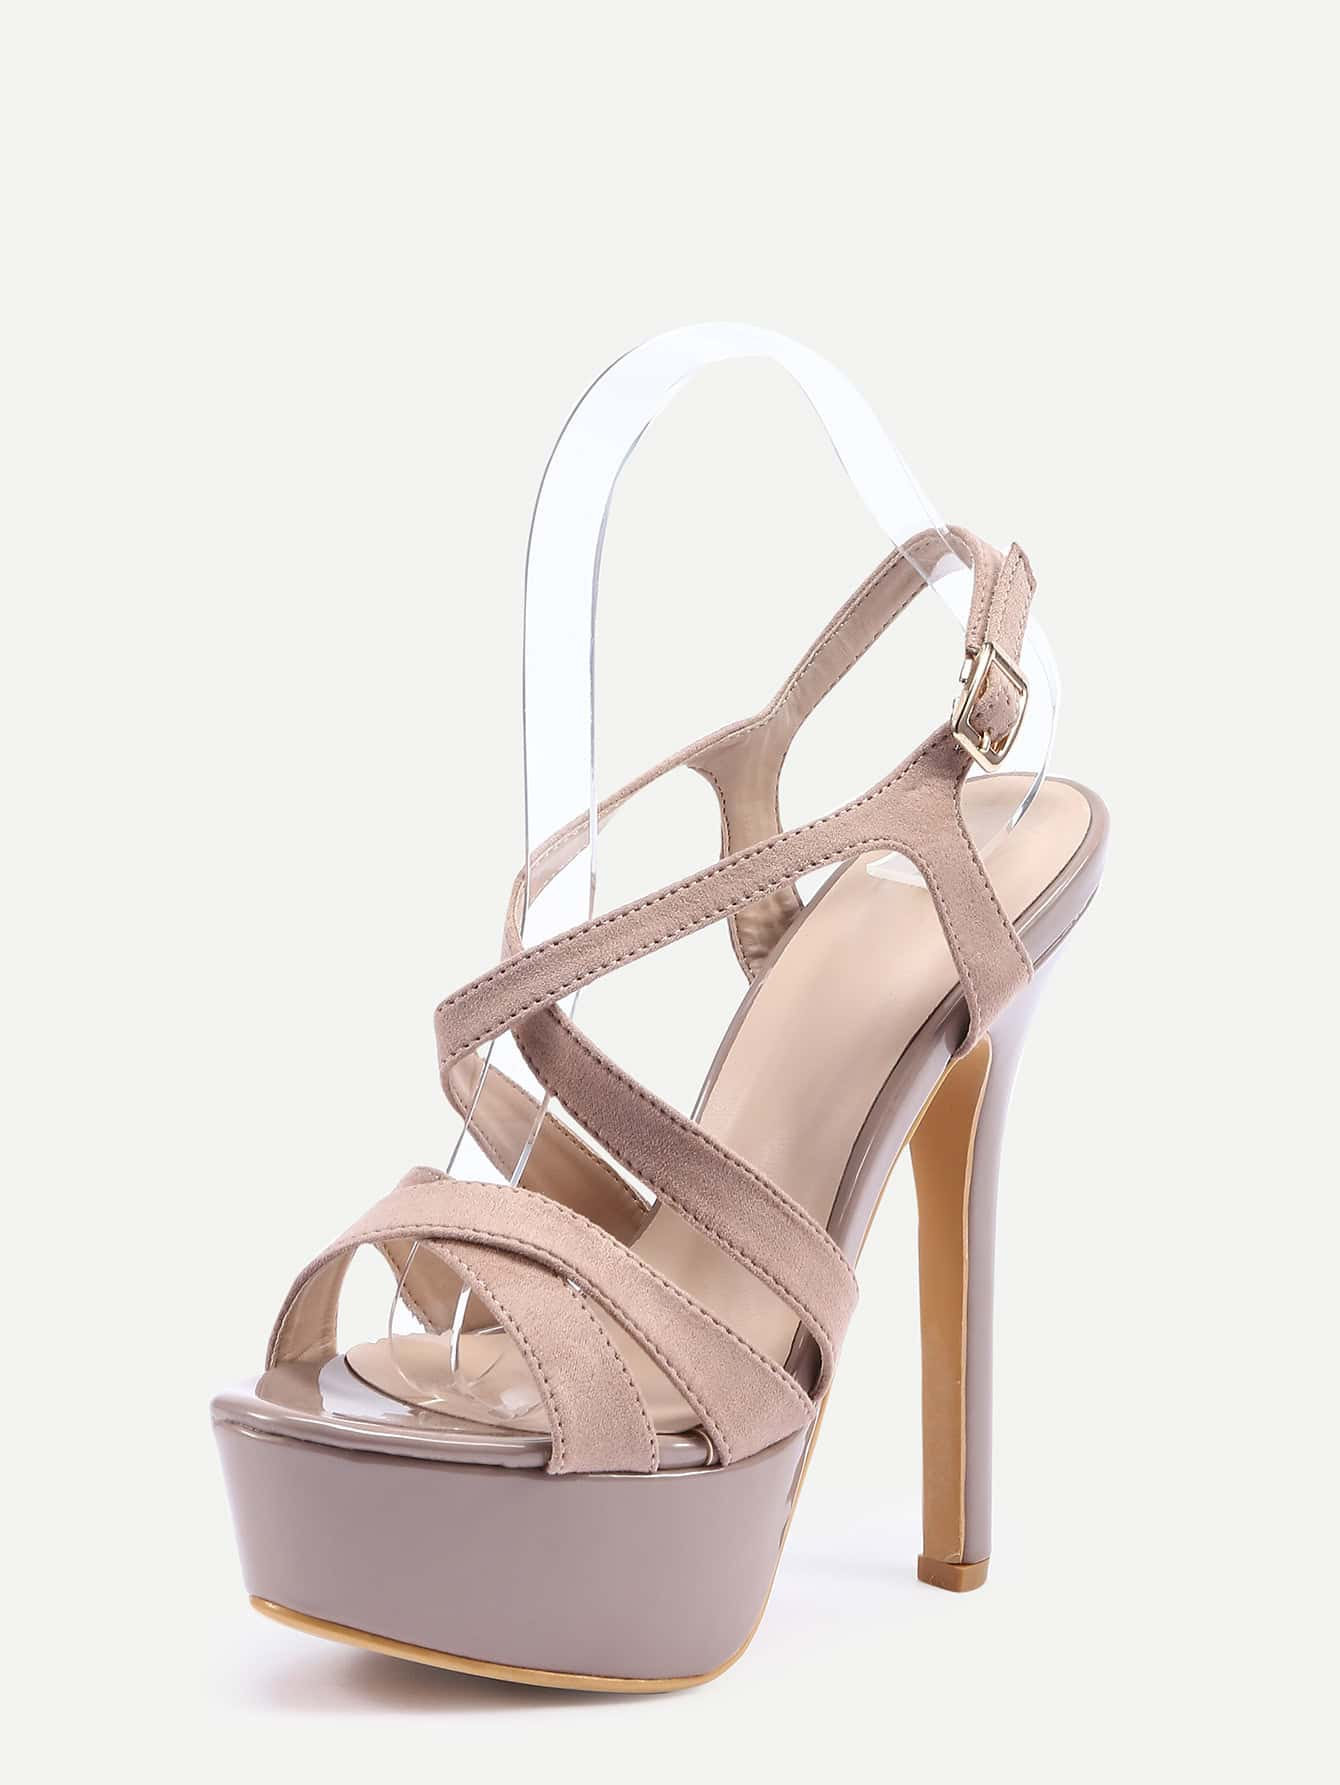 Where To Buy Platform Shoes In Los Angeles